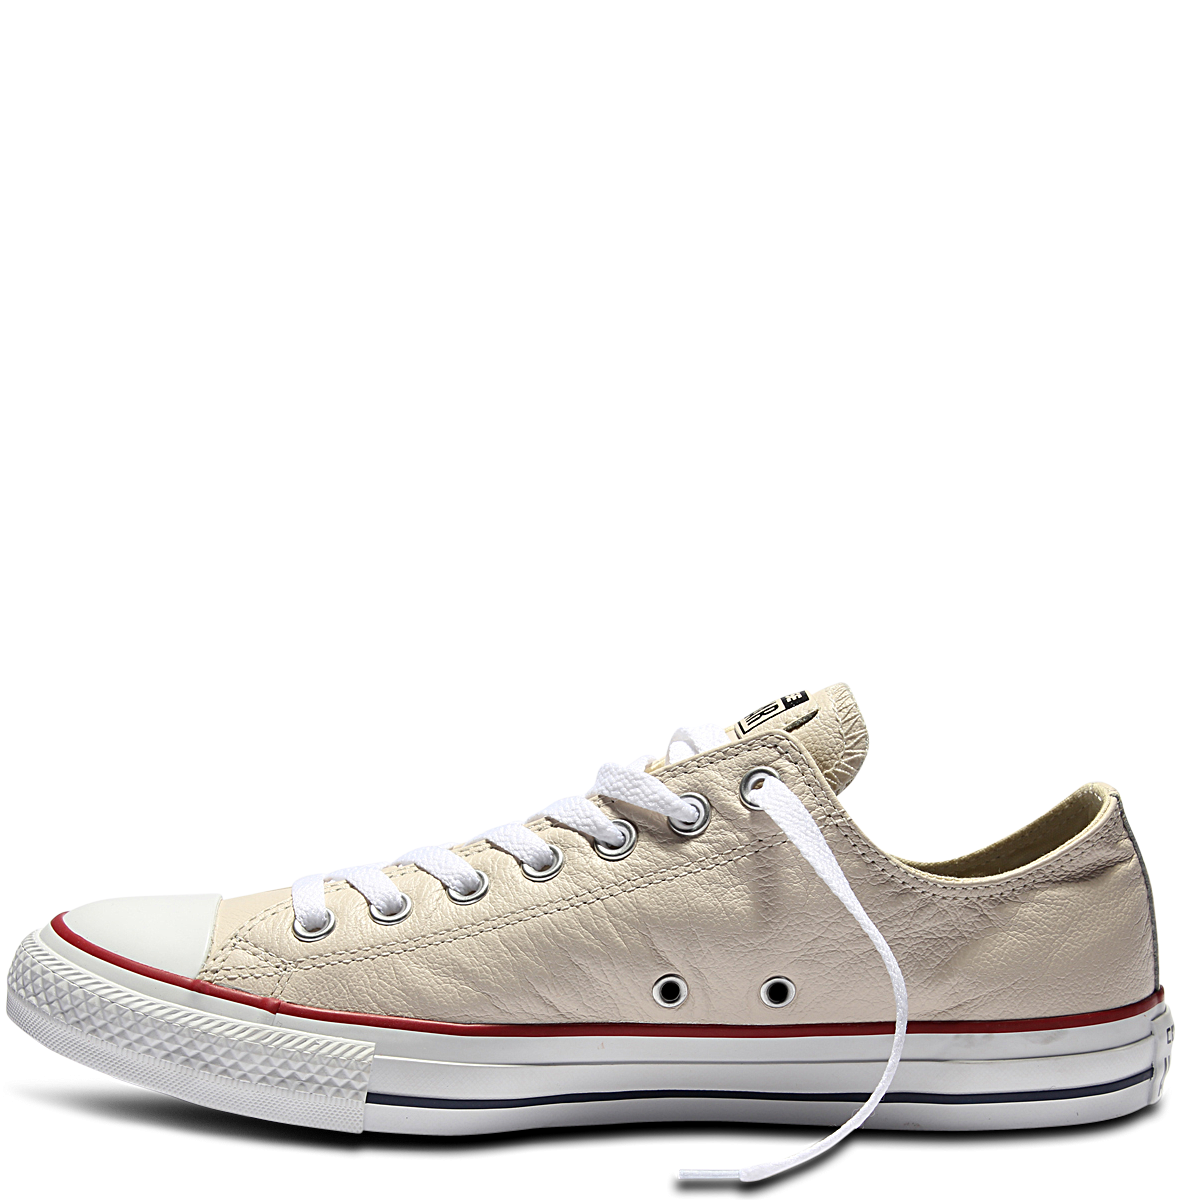 7e57ce0f3654 Chuck Taylor All Star Leather Parchment Navy White